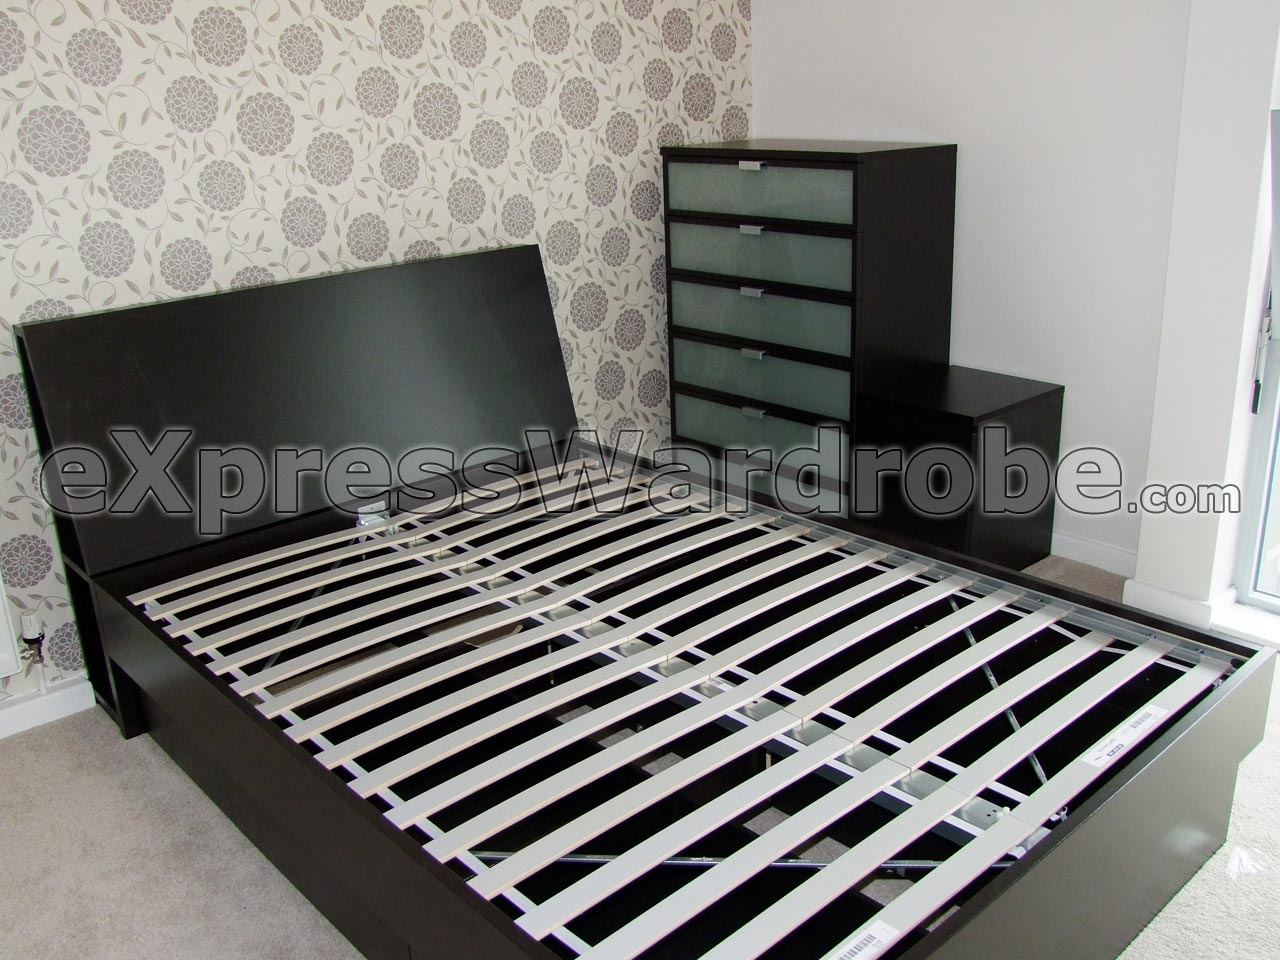 en y size beds bed products white w with king standard headboard lur frame ikea and double spr storage gb brimnes